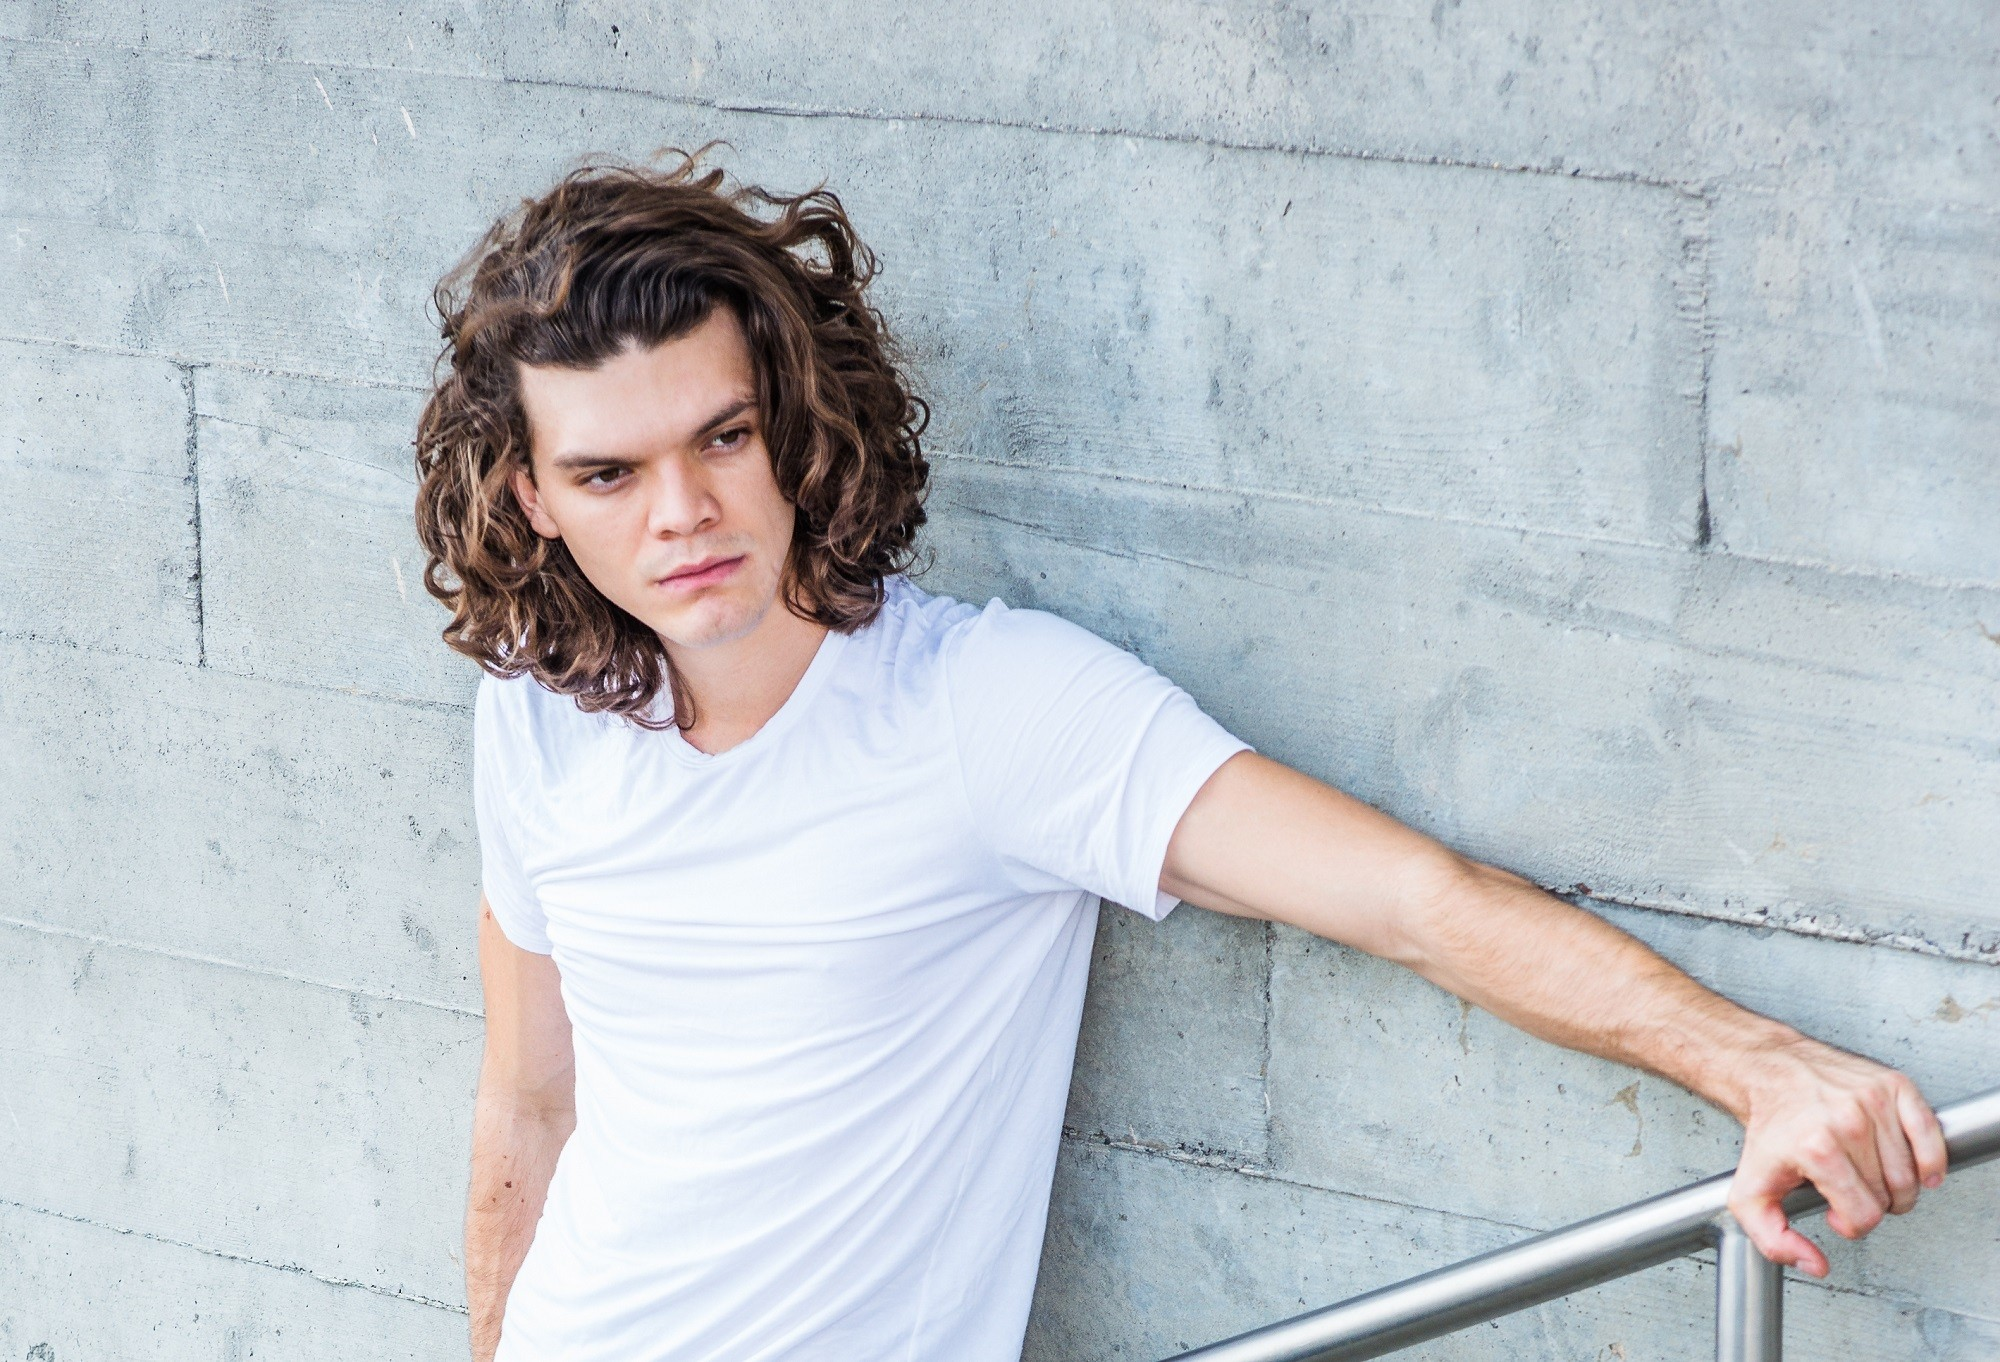 Curly hair men: Man in white shirt with medium-length curly brown hair standing against a gray wall outdors